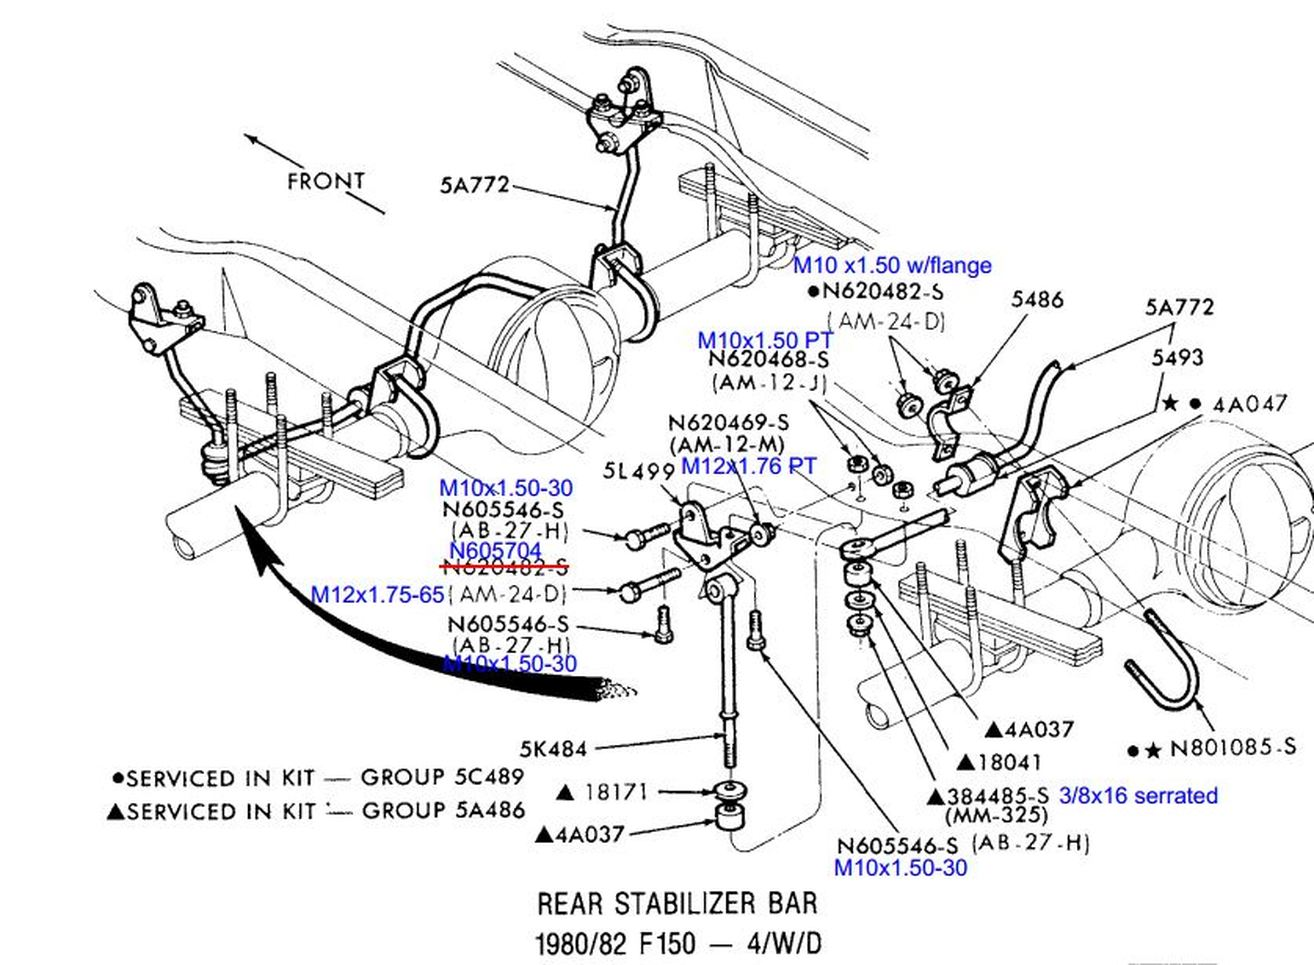 Rear Sway Bar on ford alternator brackets to mount low